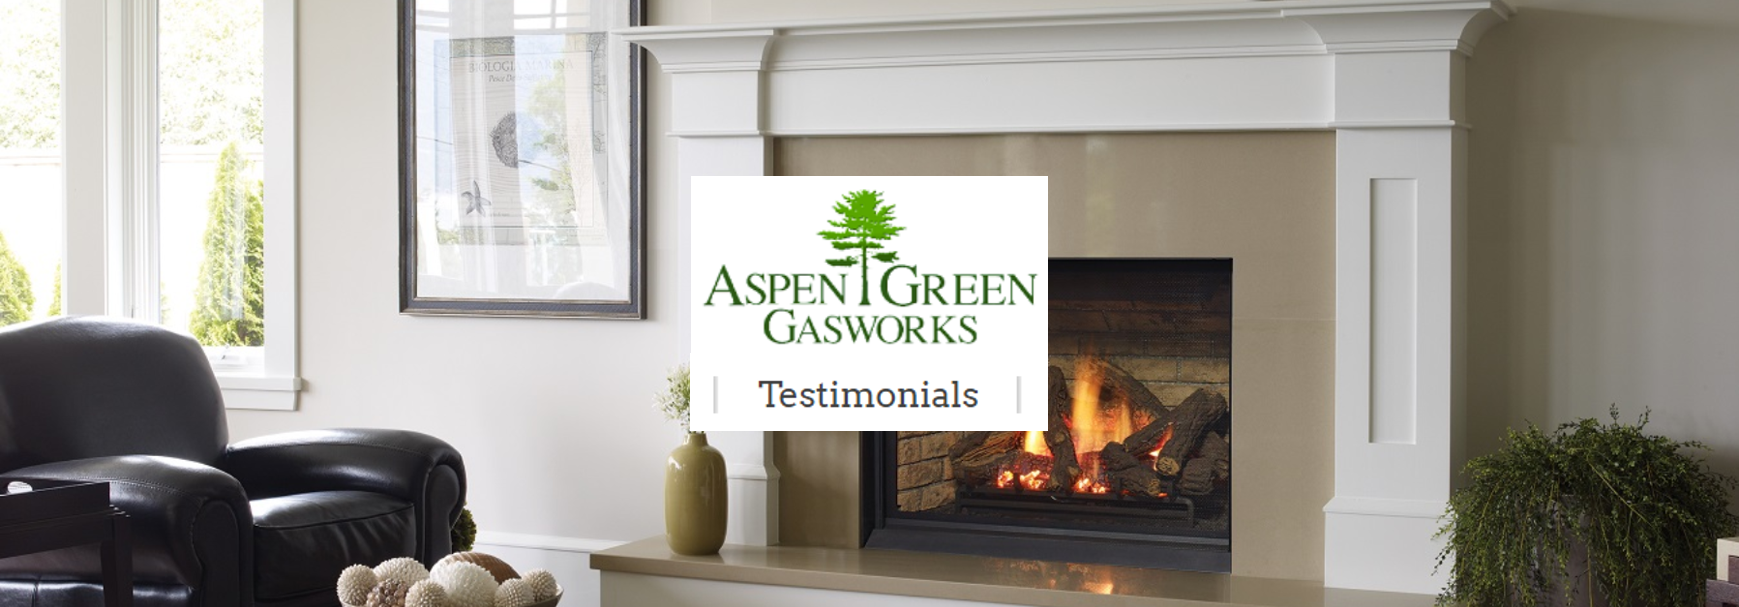 Aspen Green Gasworks reviews | Fireplace Services at 307 Spring St - Herndon VA